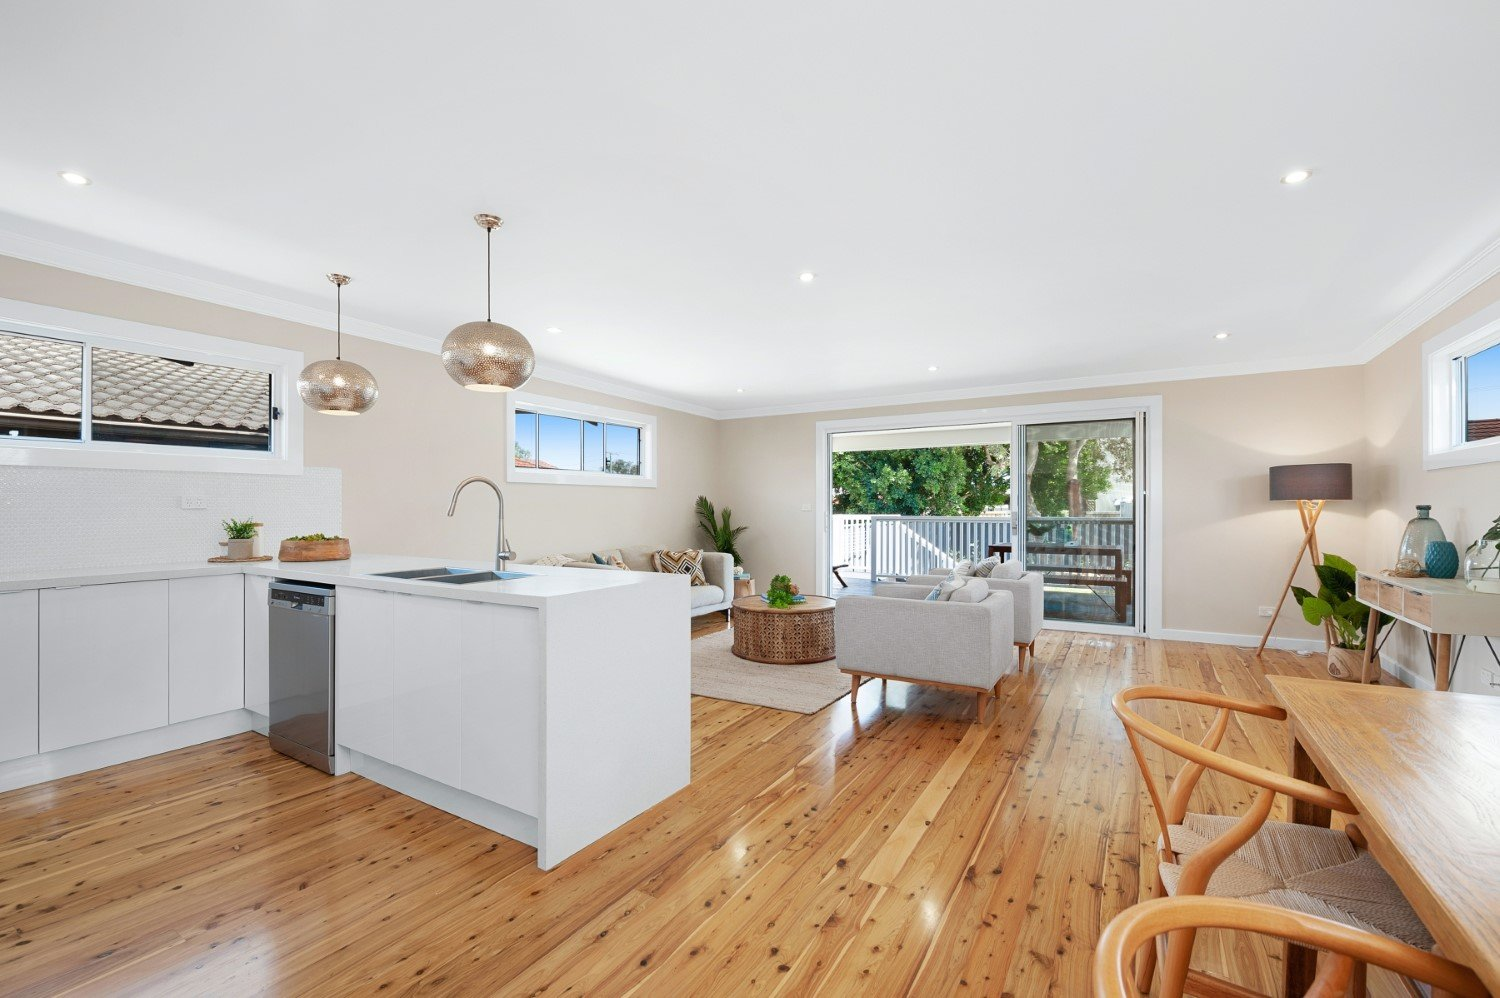 Charming weatherboard home | Belmont - https://www.peonyandsilk.com.au/wp-content/uploads/2019/02/Peony-and-Silk-Charming-weatherboard-home-Belmont-5.jpg